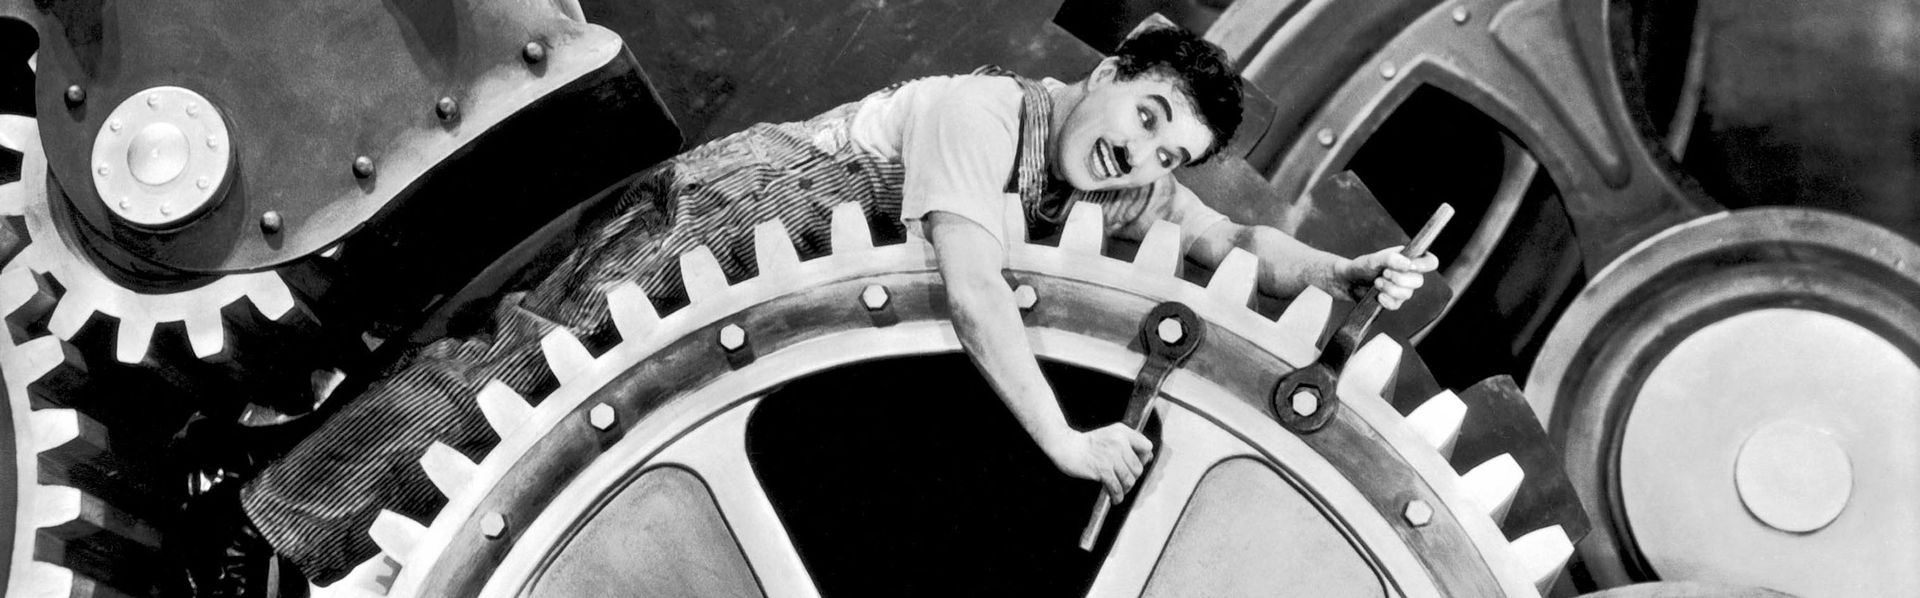 "Charlie Chaplin dans ""Les Temps modernes"". [CHARLES CHAPLIN PRODUCTIONS / COLLECTION CHRISTOPHEL - AFP]"